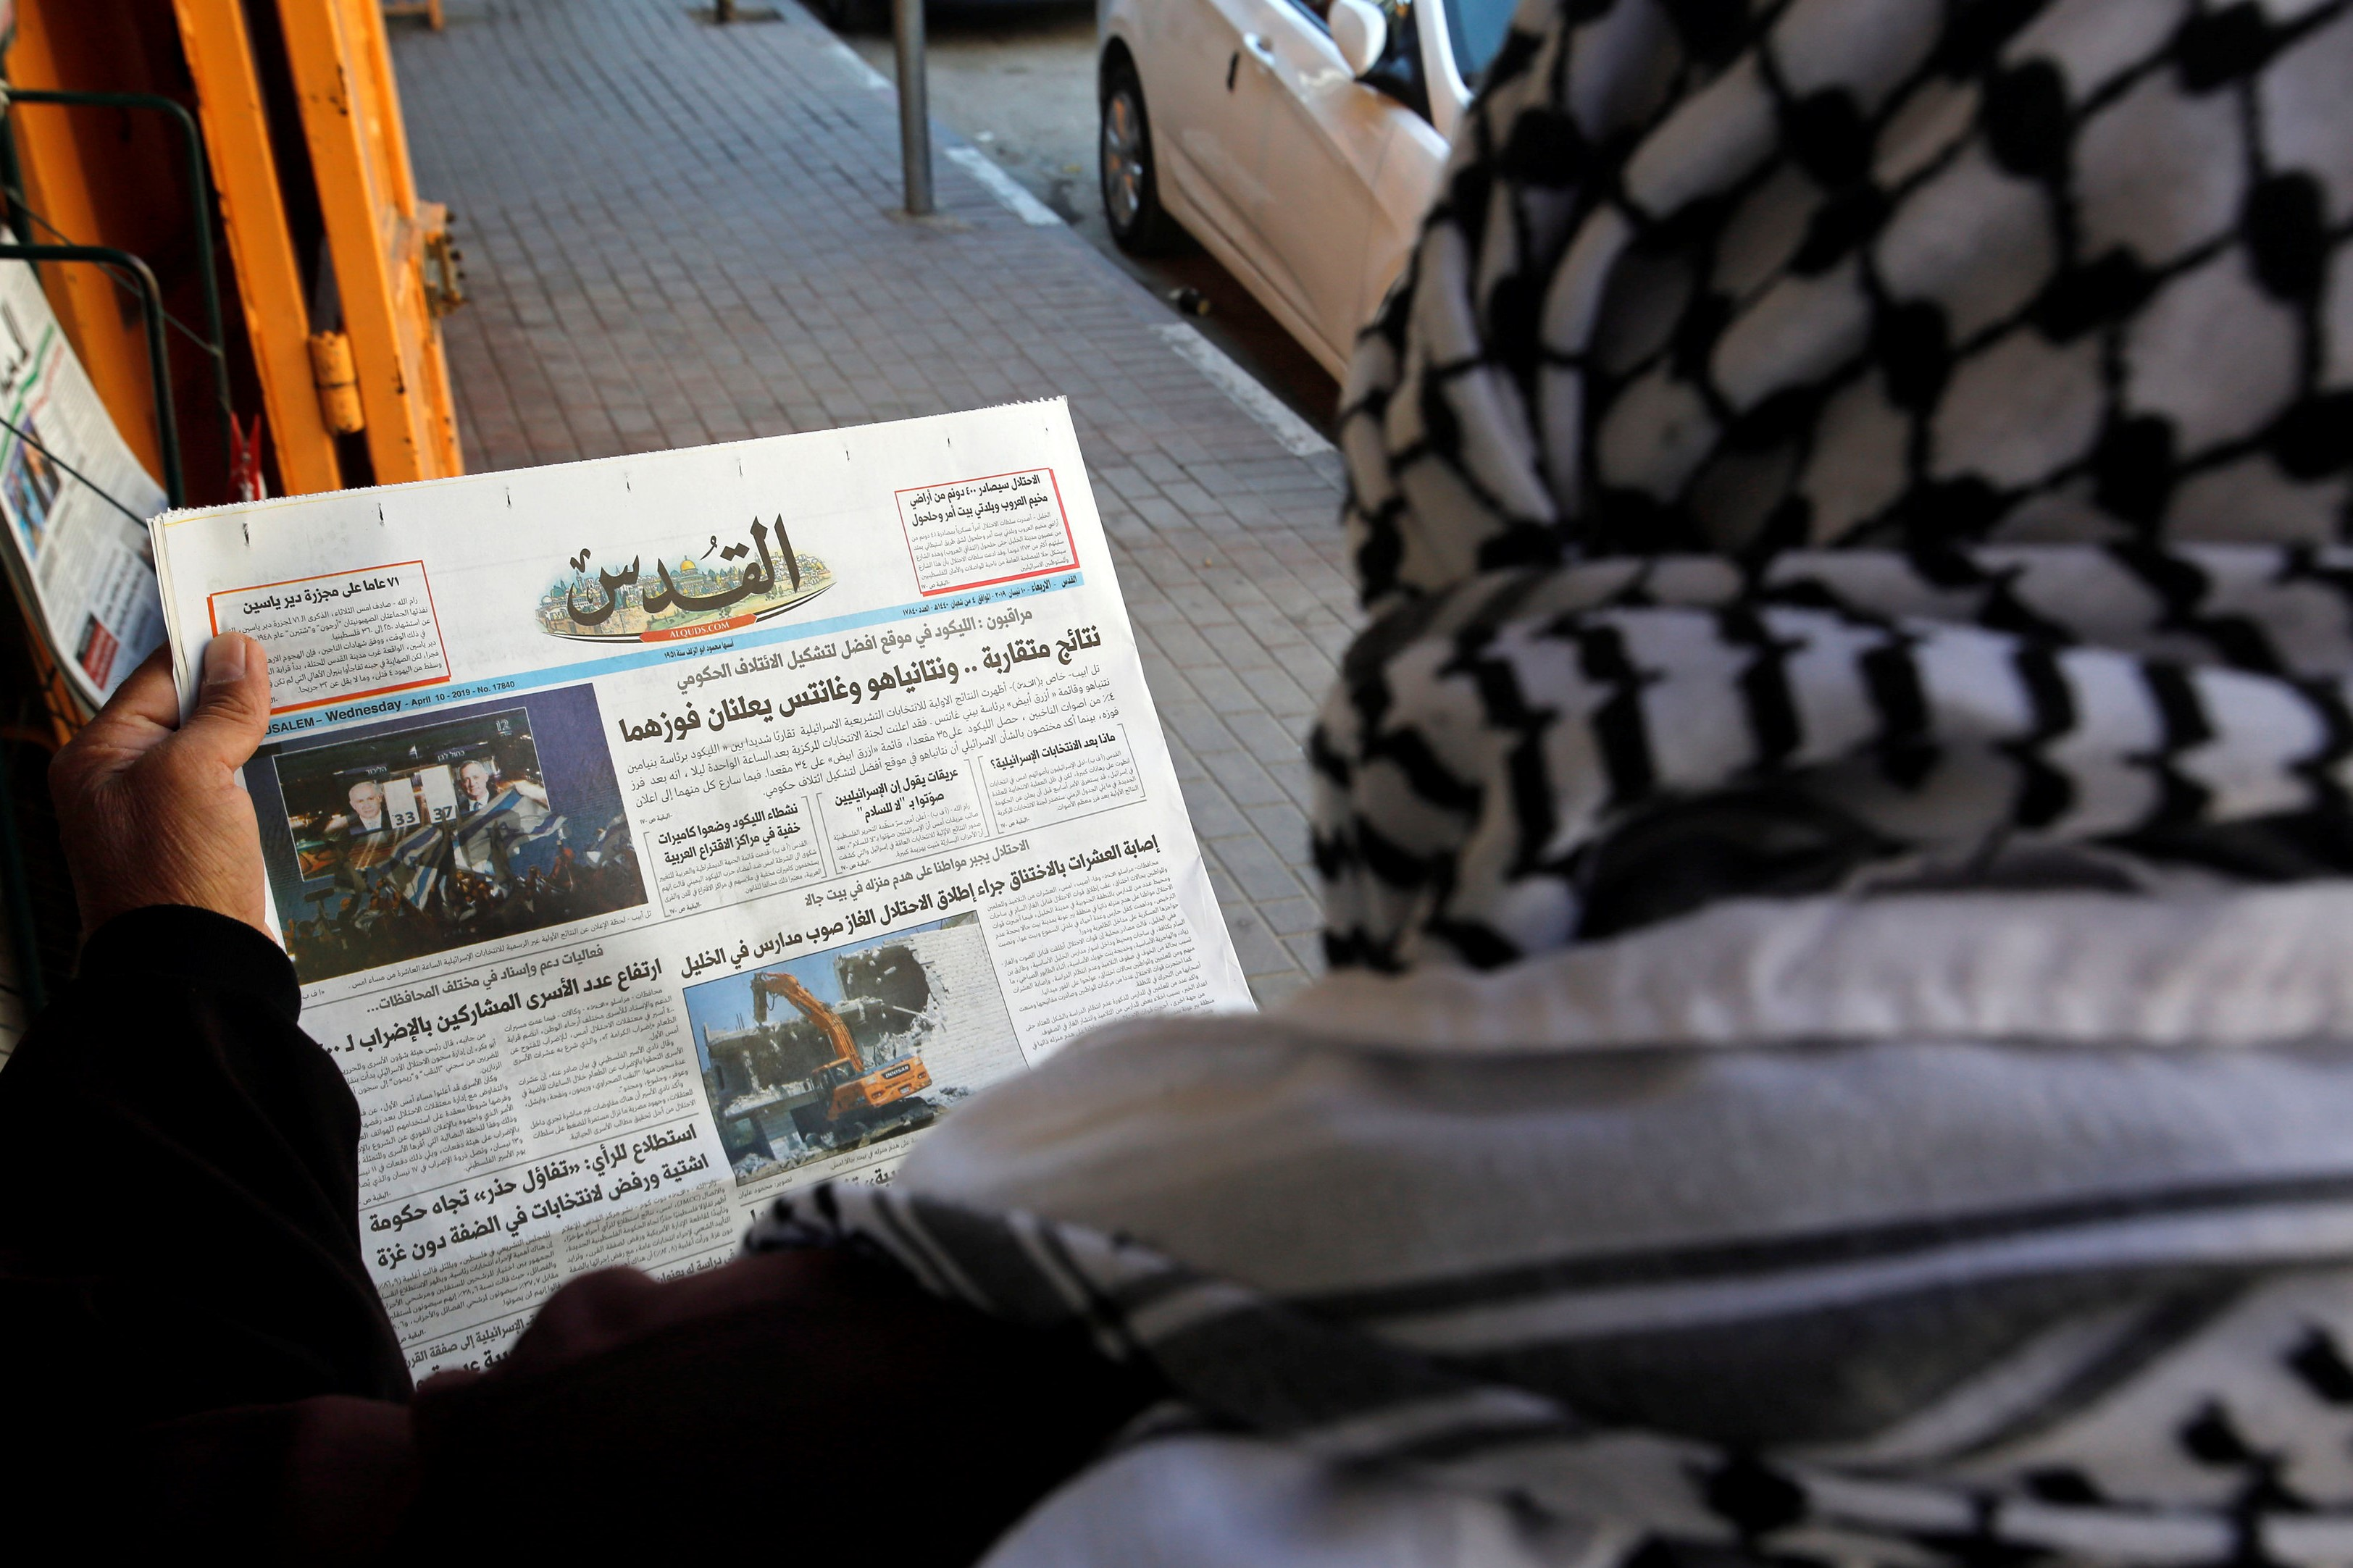 A Palestinian man reads a local newspaper with news of the Israeli election, in Hebron, in the Israeli-occupied West Bank on 10 April (REUTERS)